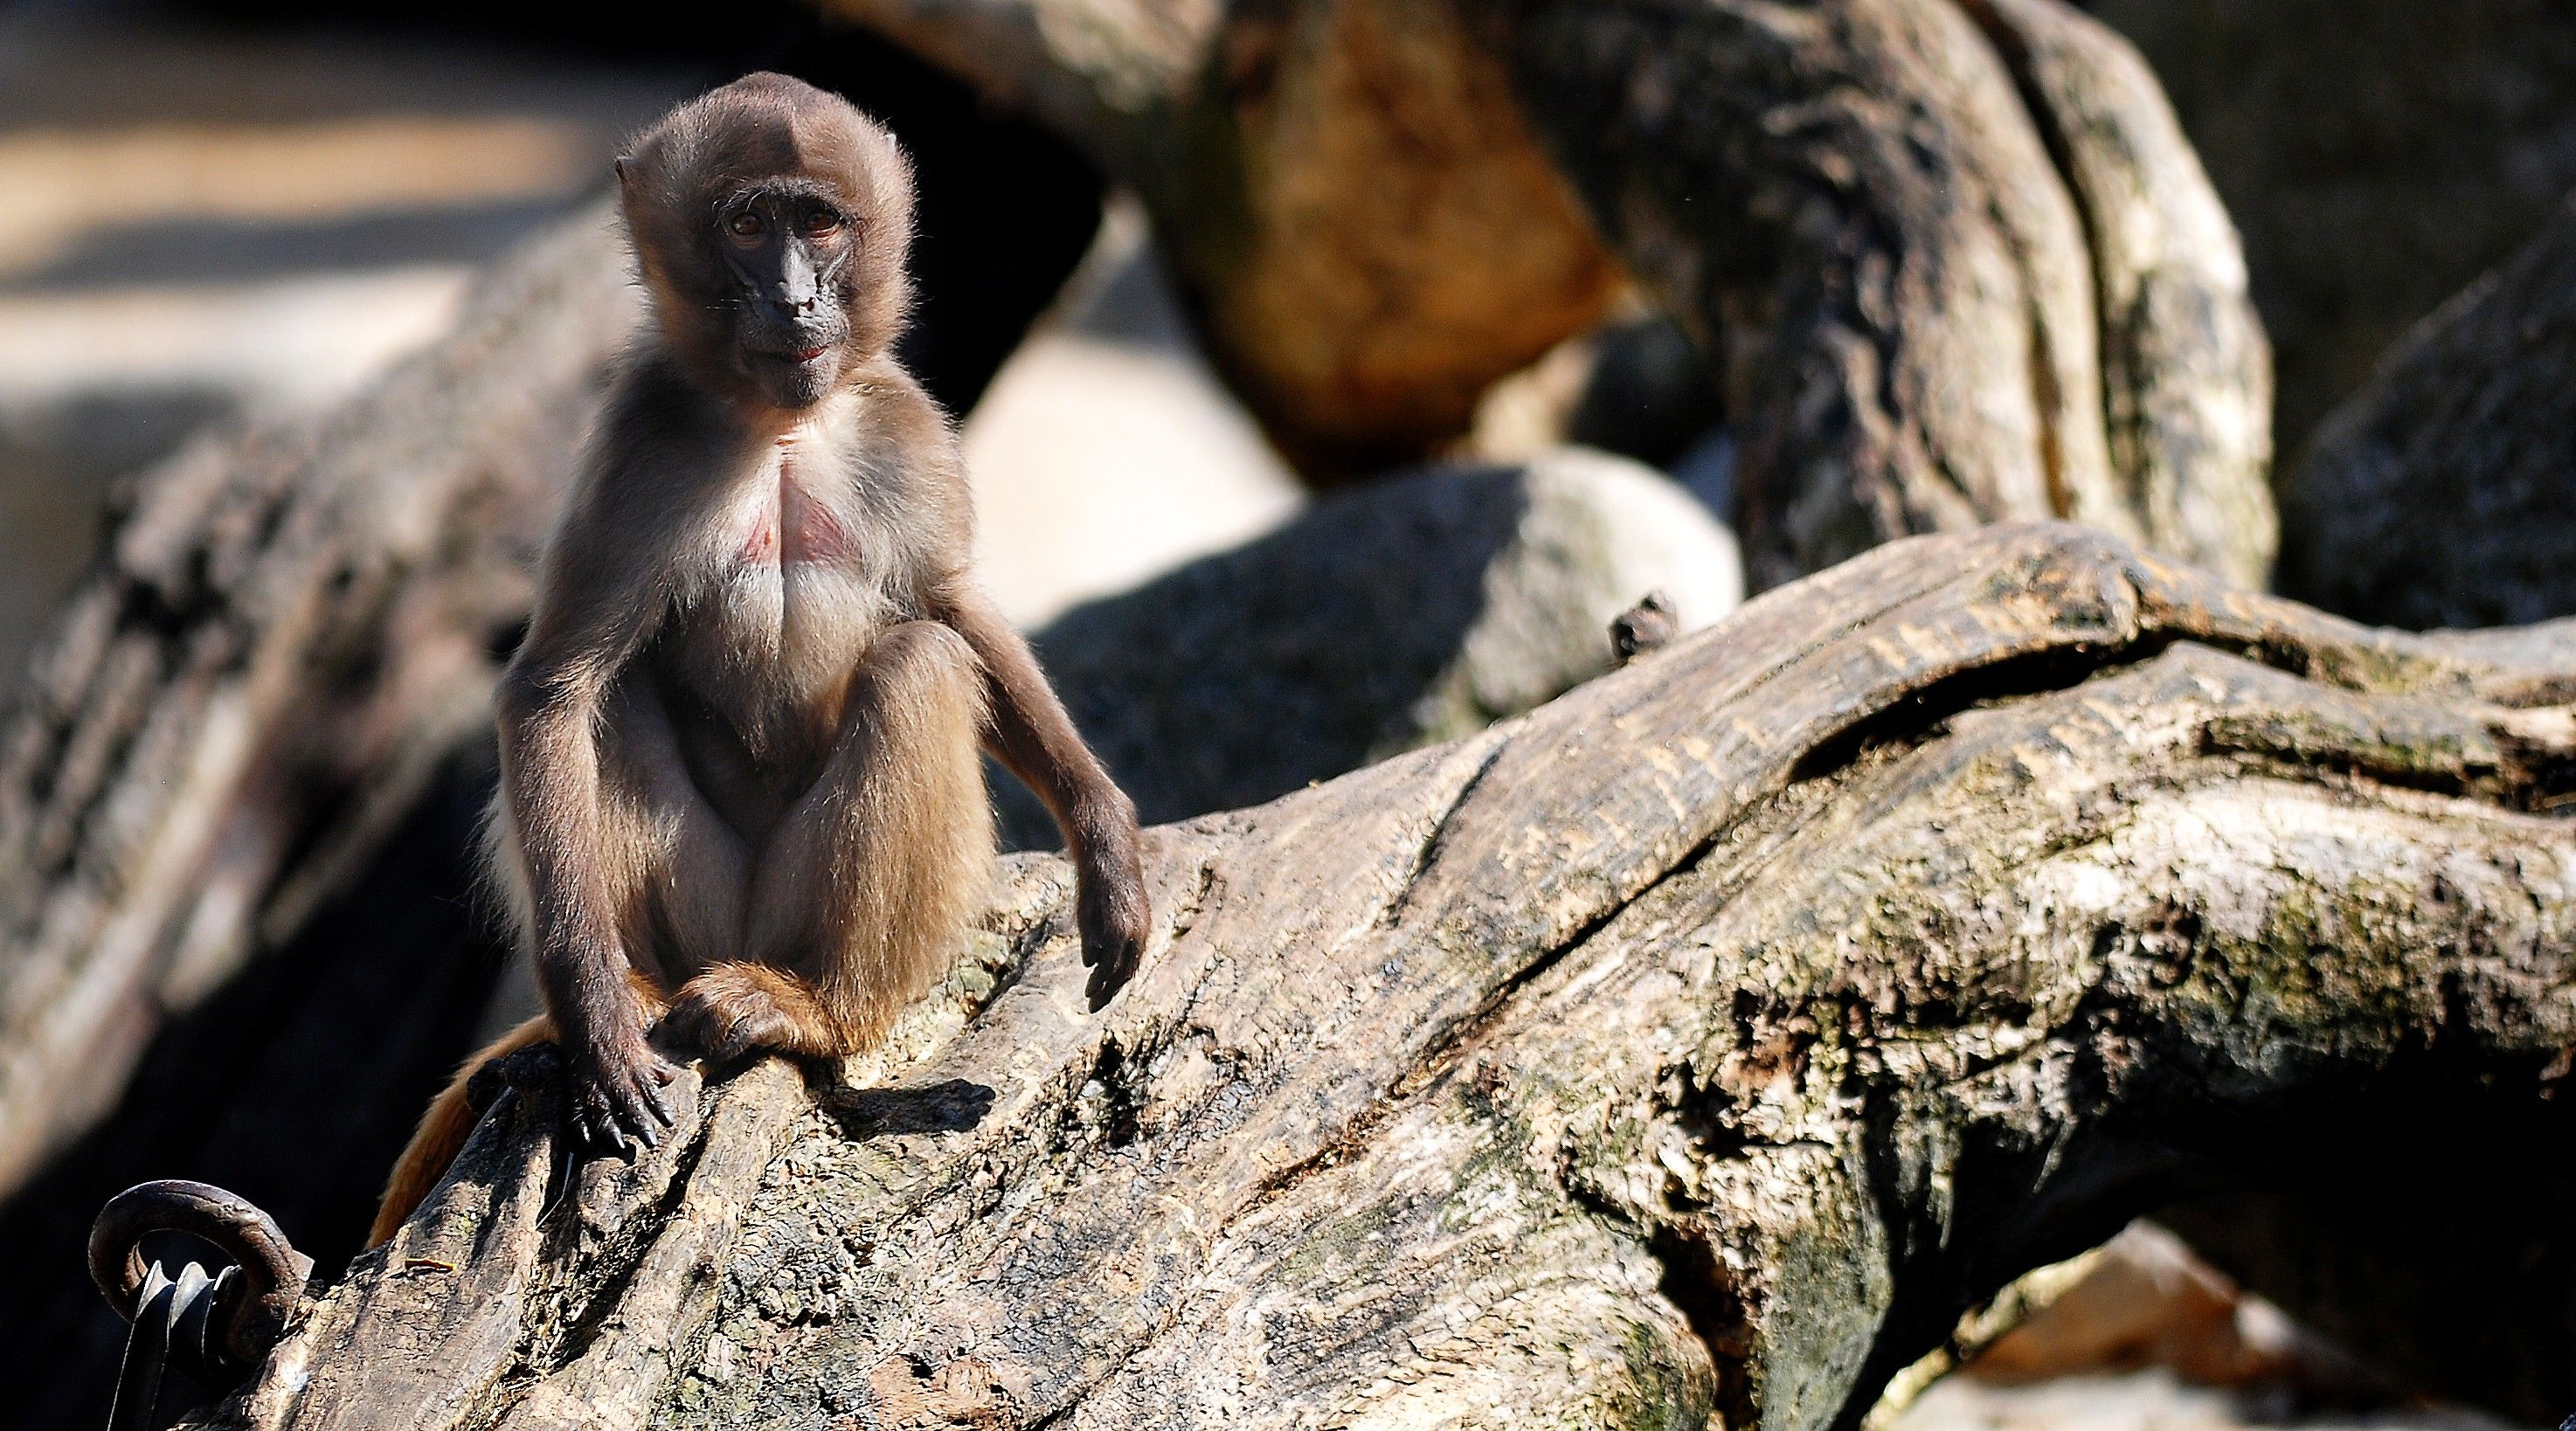 monkey primate baboon wallpaper download full free high resolution ...